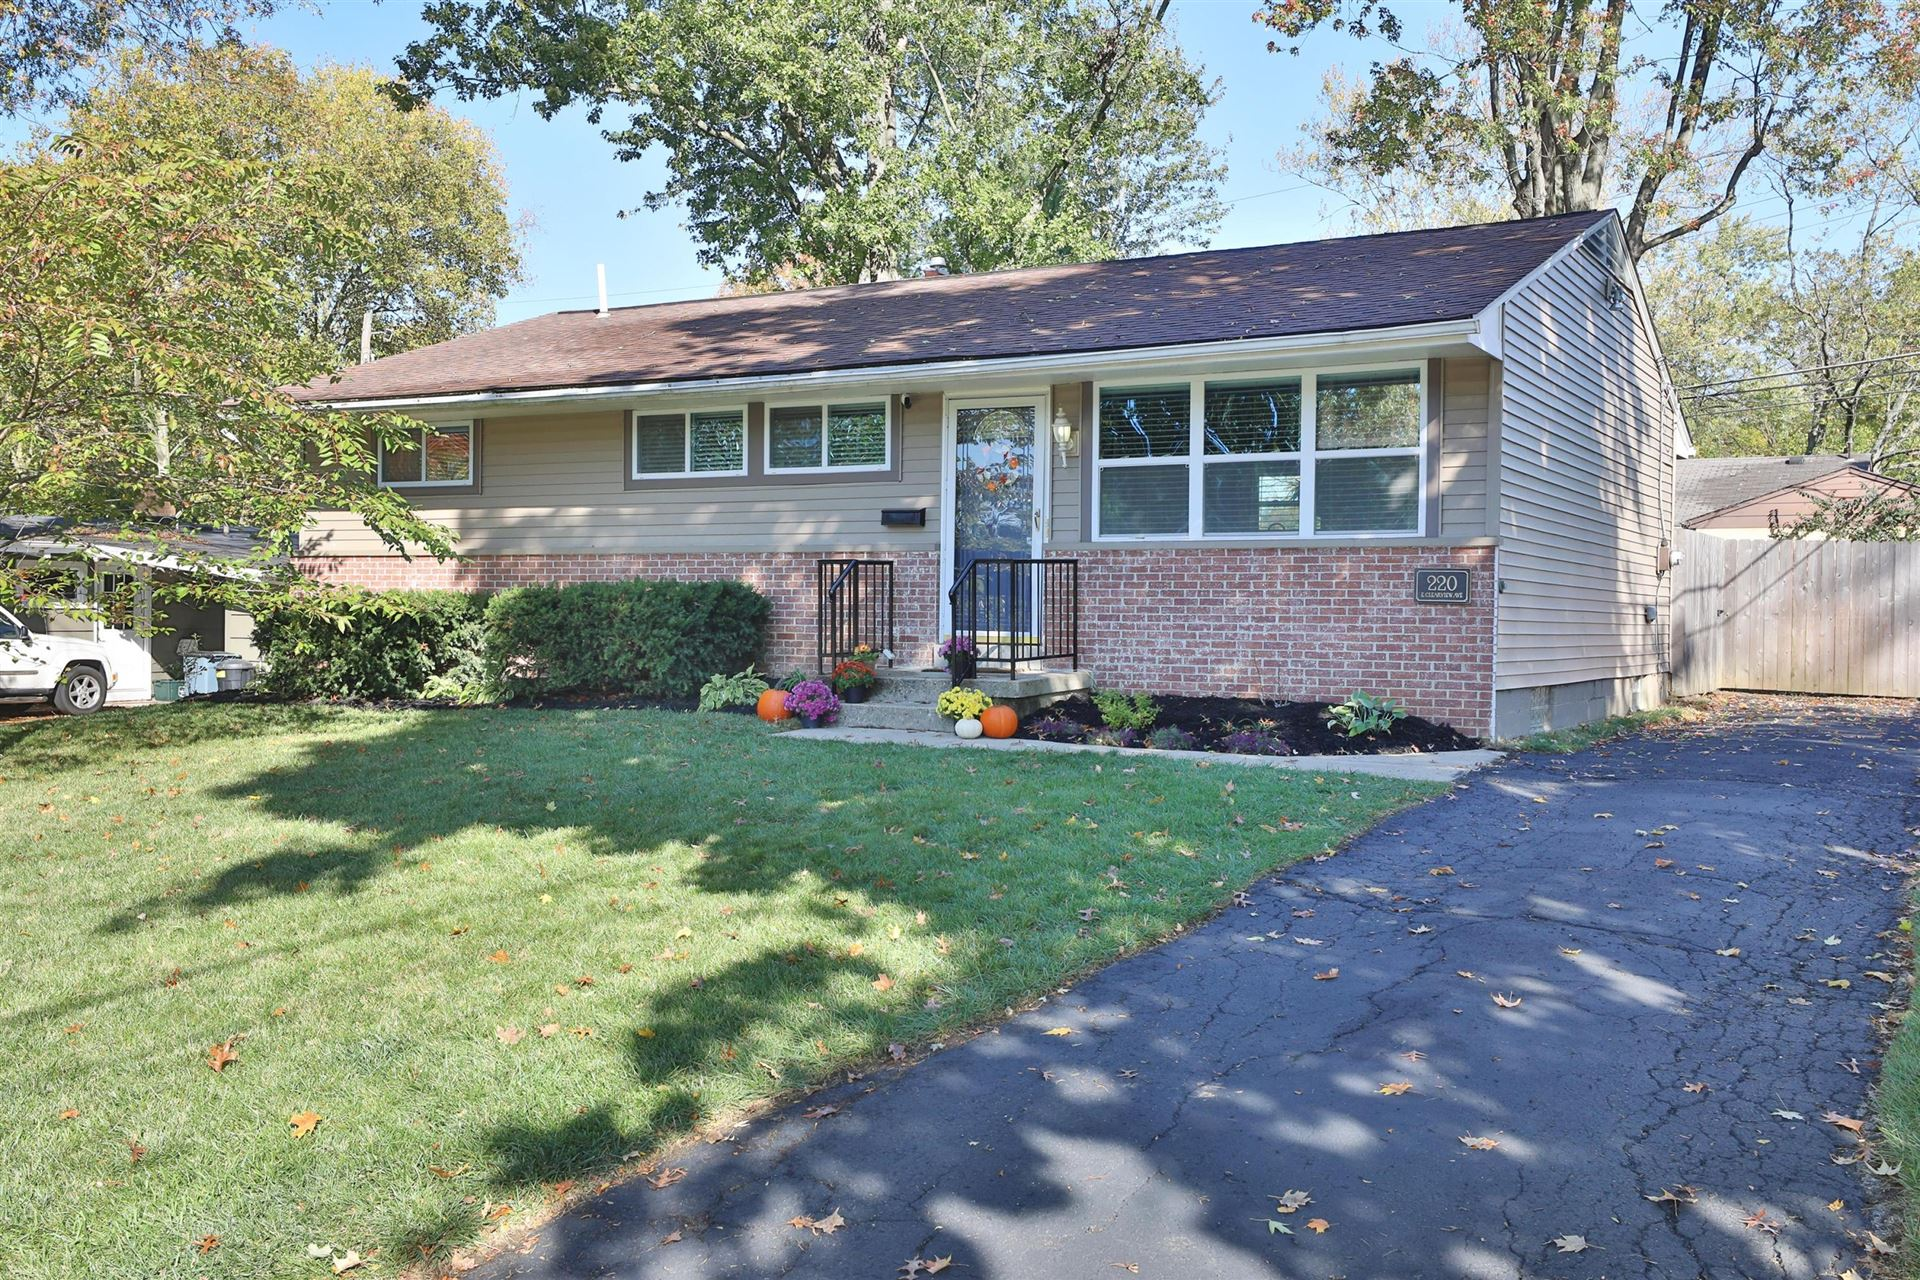 Photo of 220 E Clearview Avenue, Worthington, OH 43085 (MLS # 220036832)